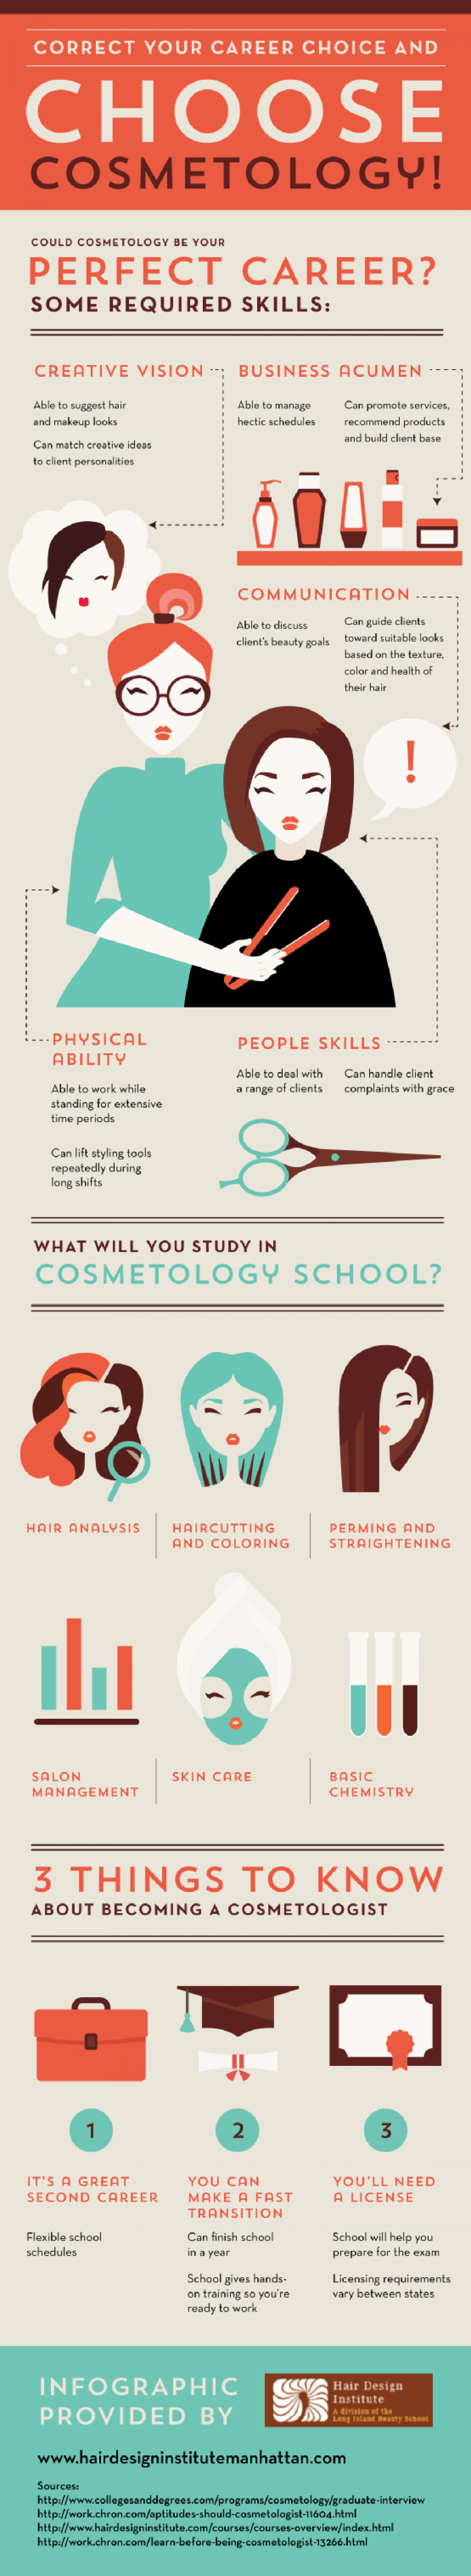 Correct Your Career Choice and Choose Cosmetology!  Infographic